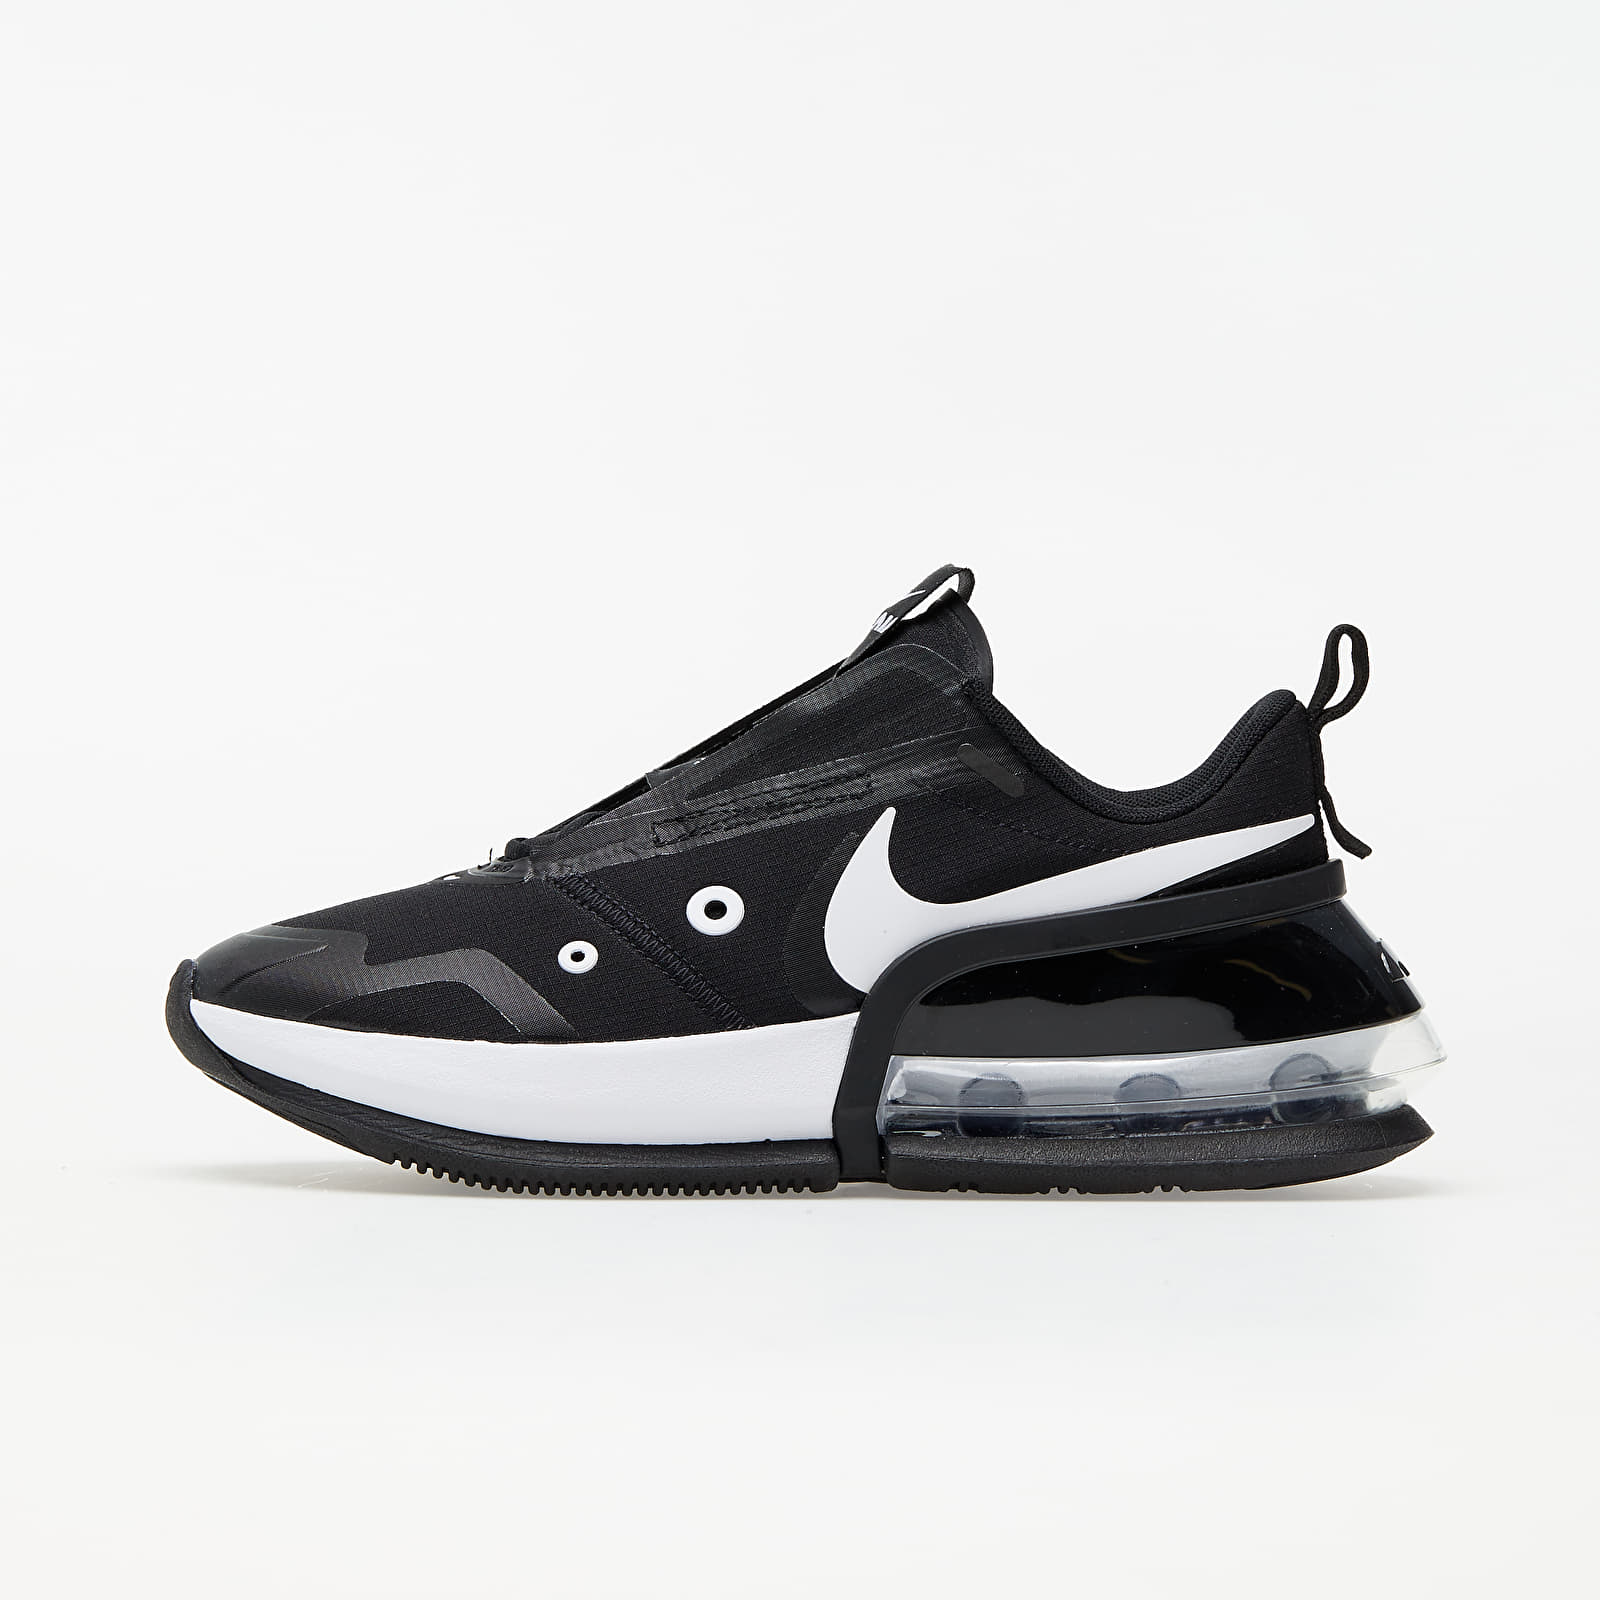 Nike W Air Max Up Black/ White-Metallic Silver EUR 40.5